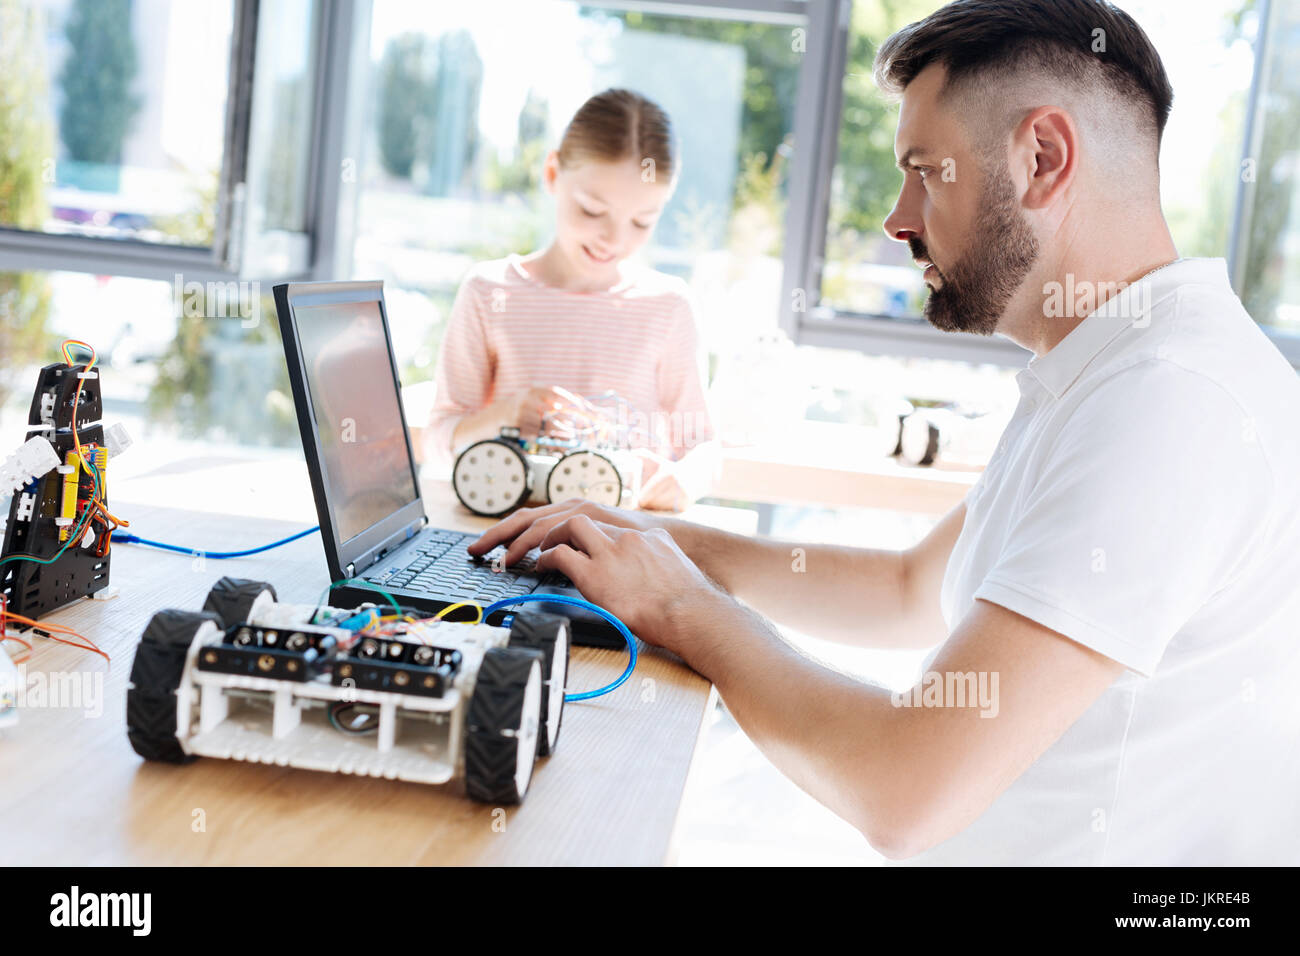 Robotics Teacher Researching For New Project Ideas Stock Photo